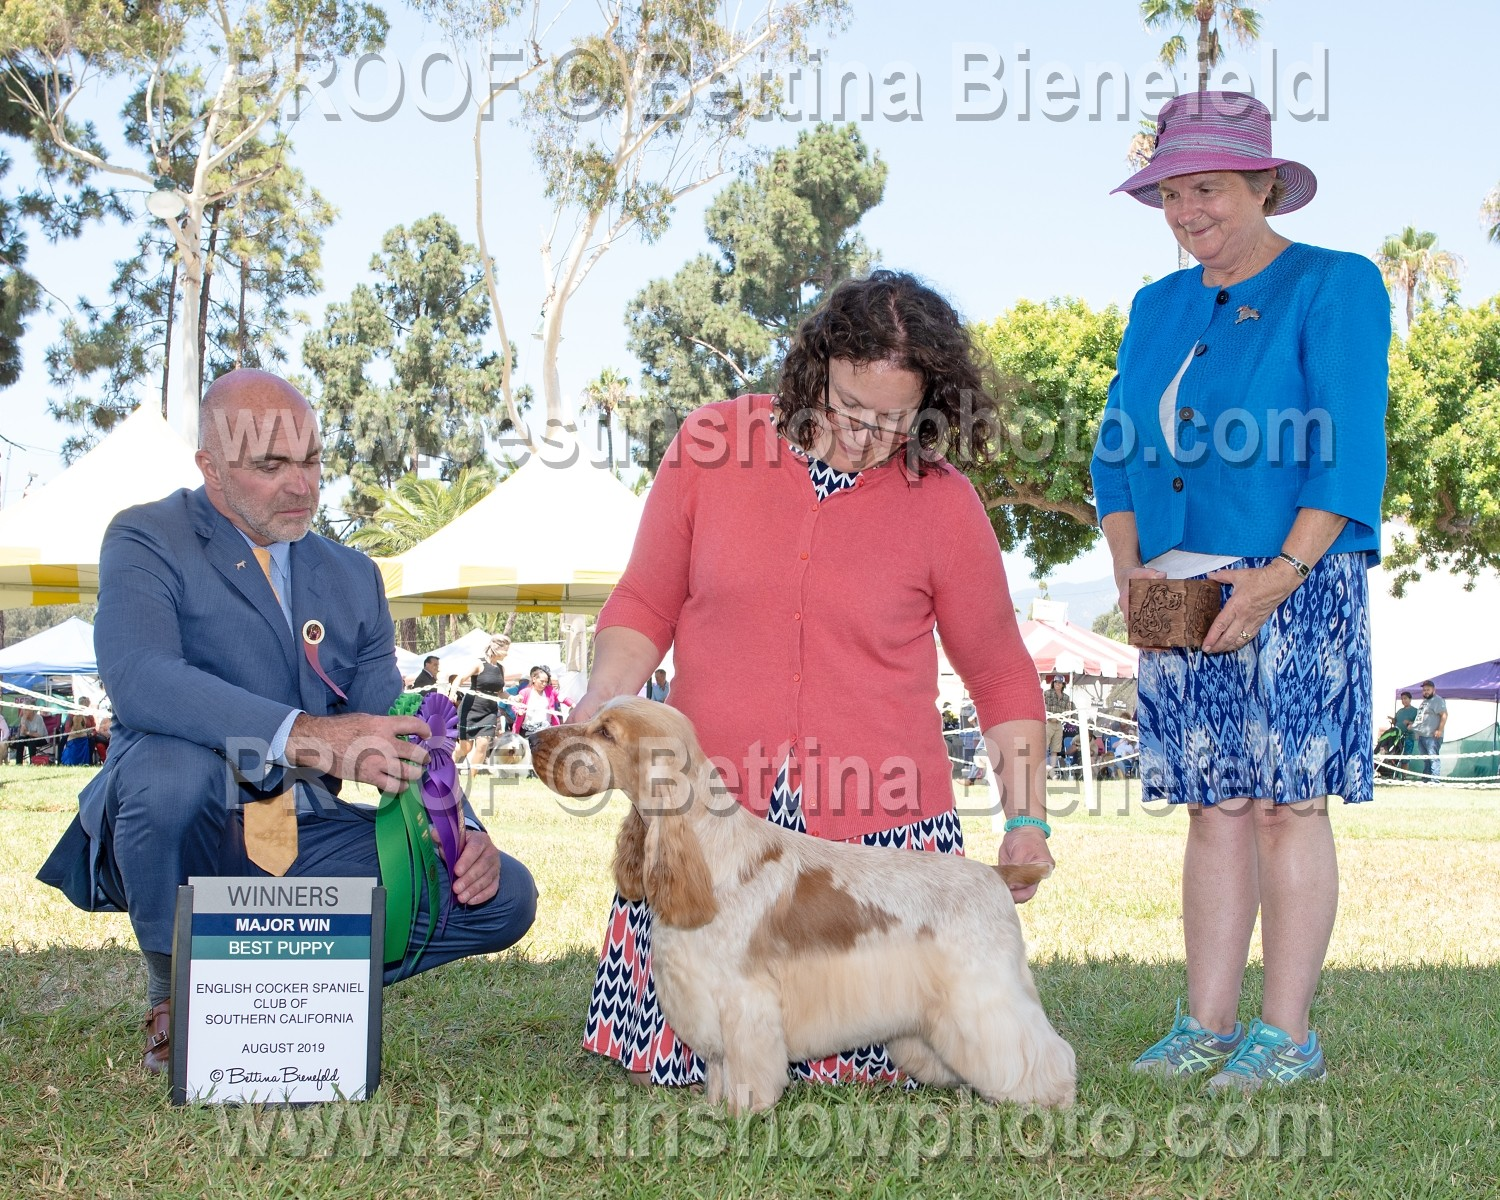 English Cocker Spaniel Club of Southern California ~ August 24, 2019